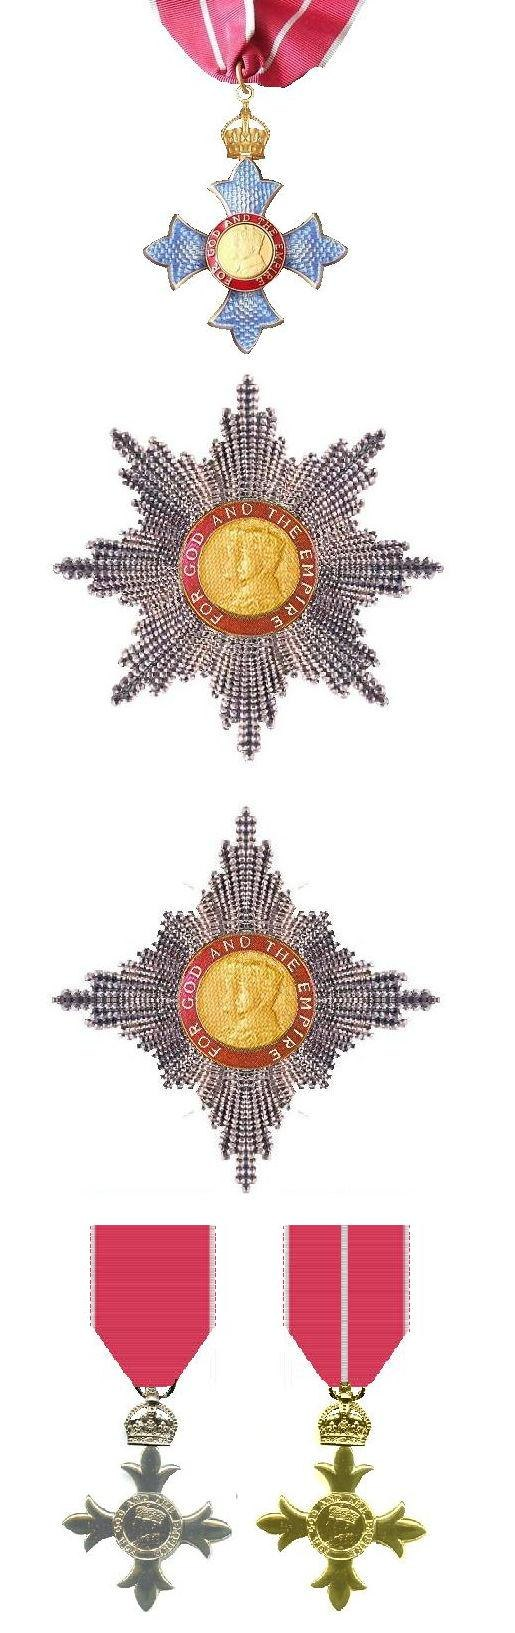 Order of the British Empire Insignia modern